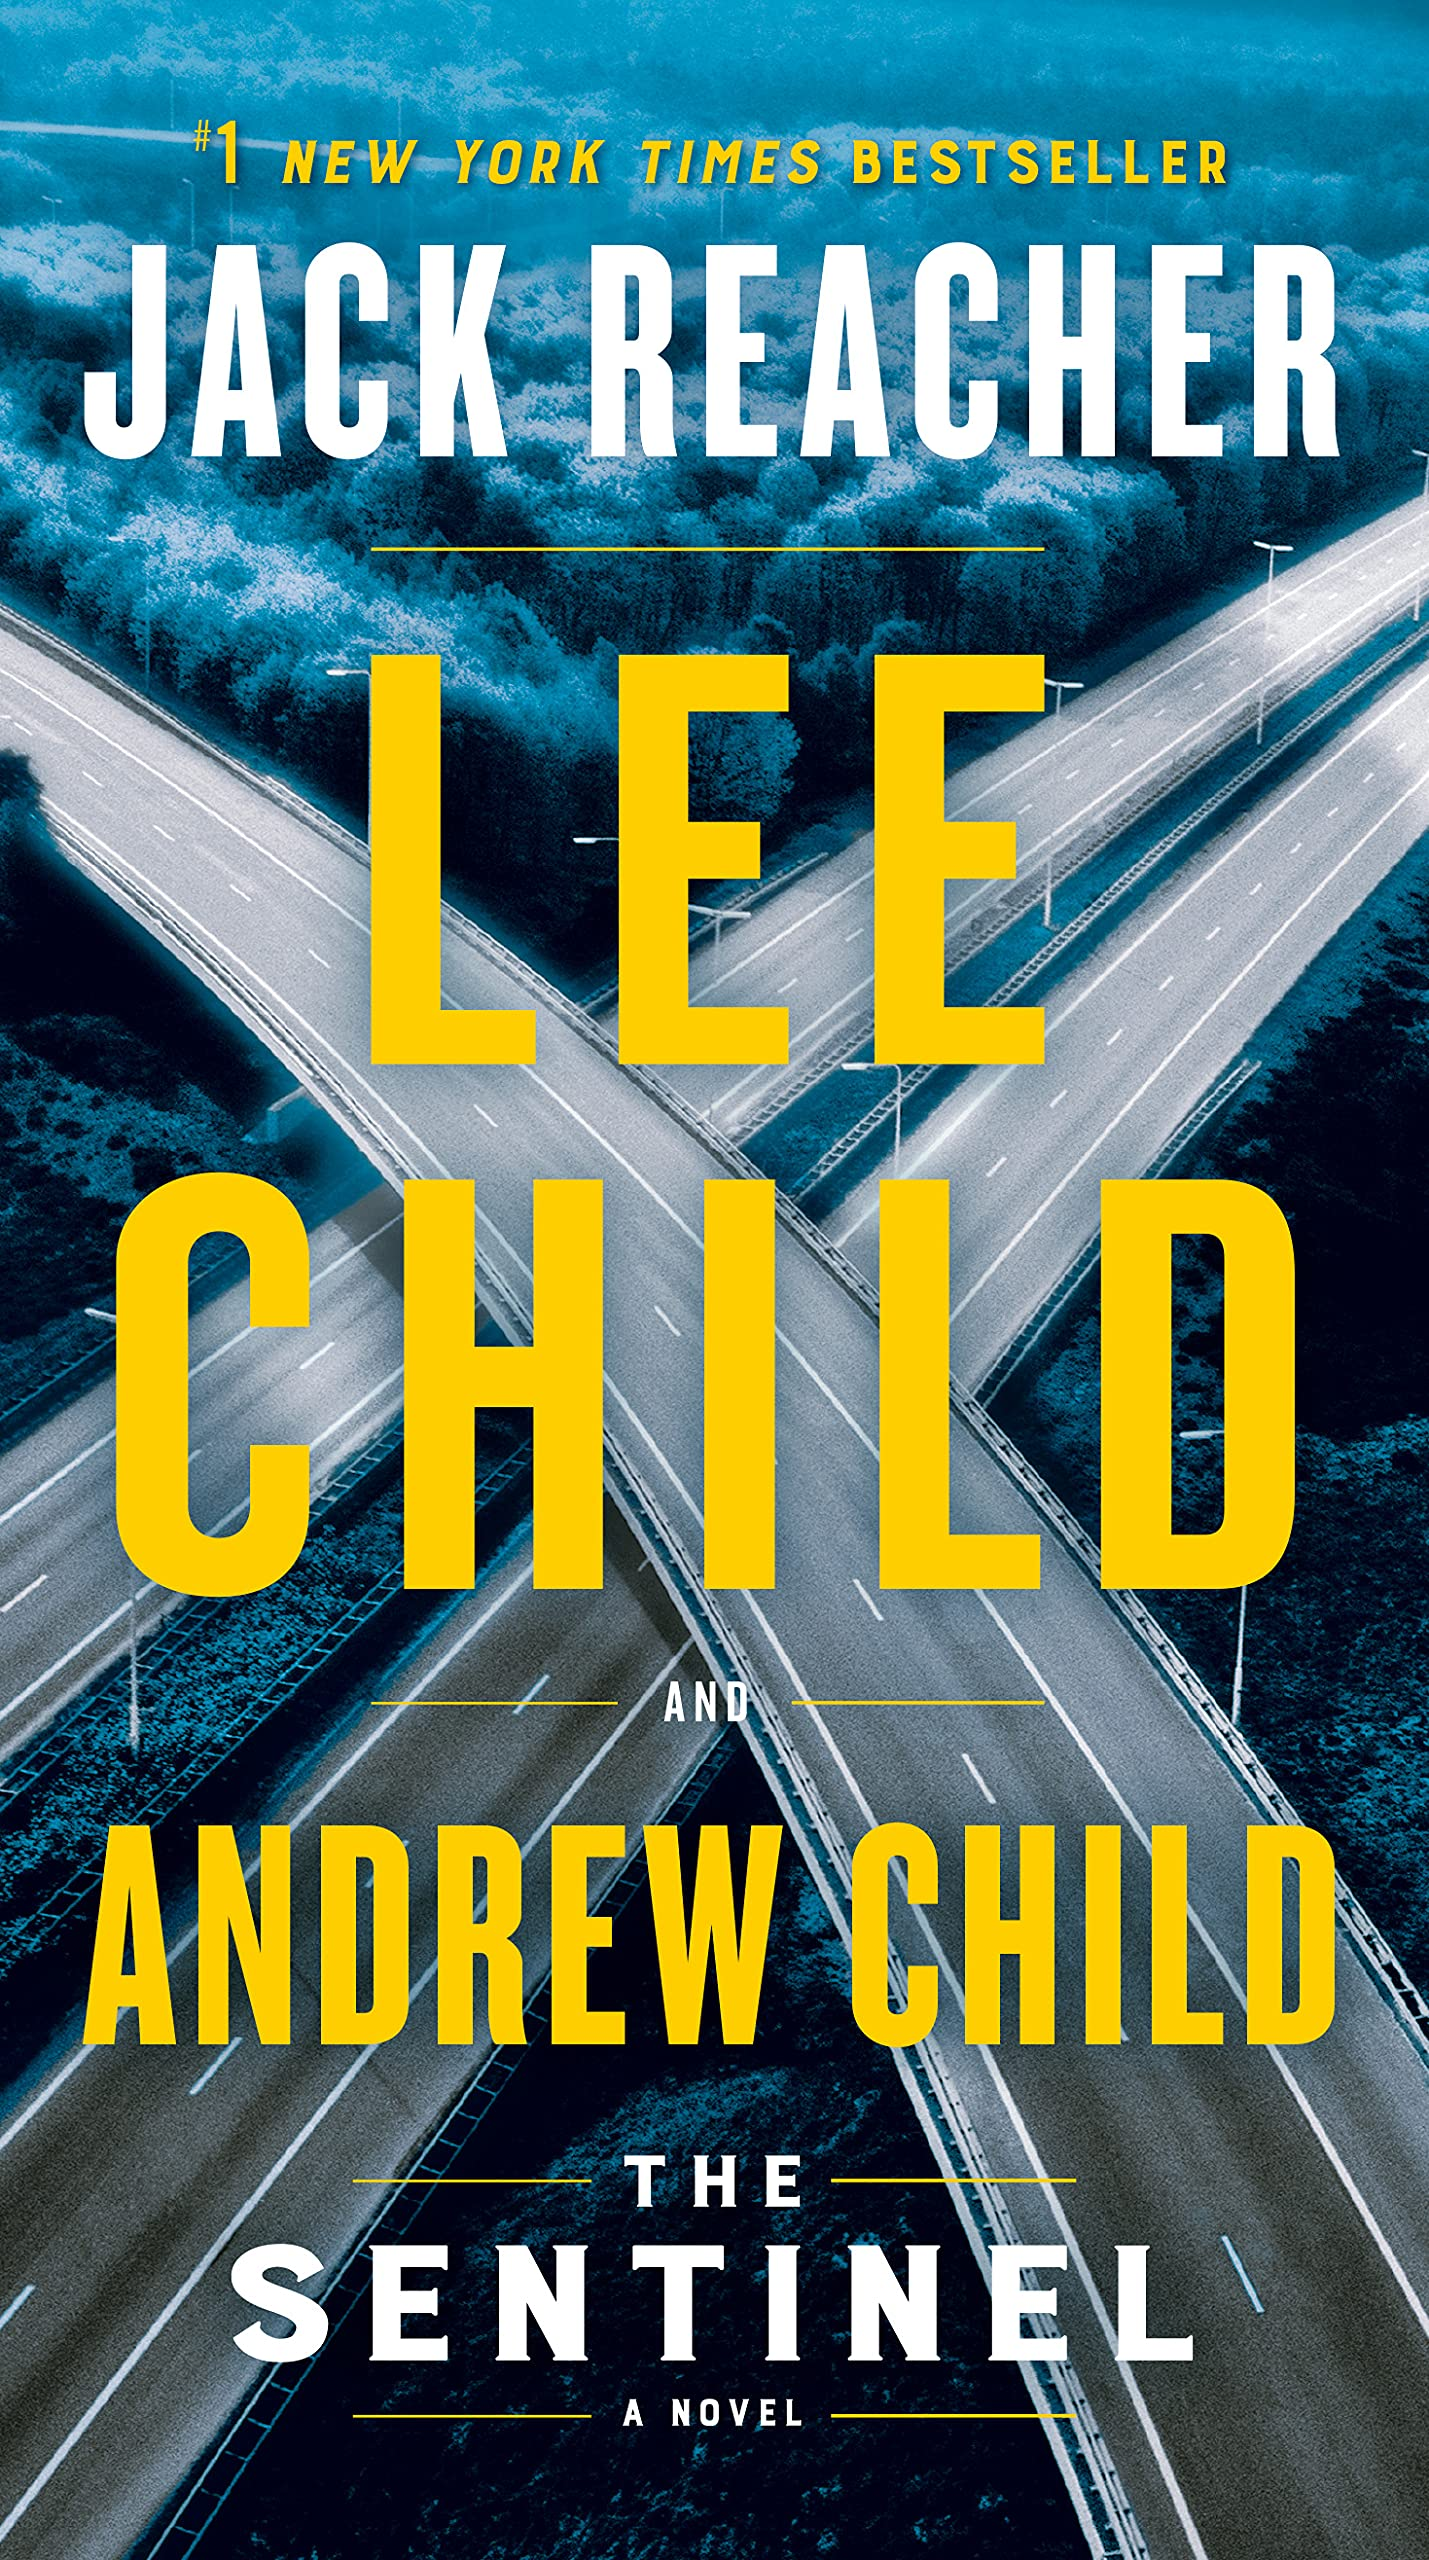 Cover image of The Sentinel by Lee Child & Andrew Child